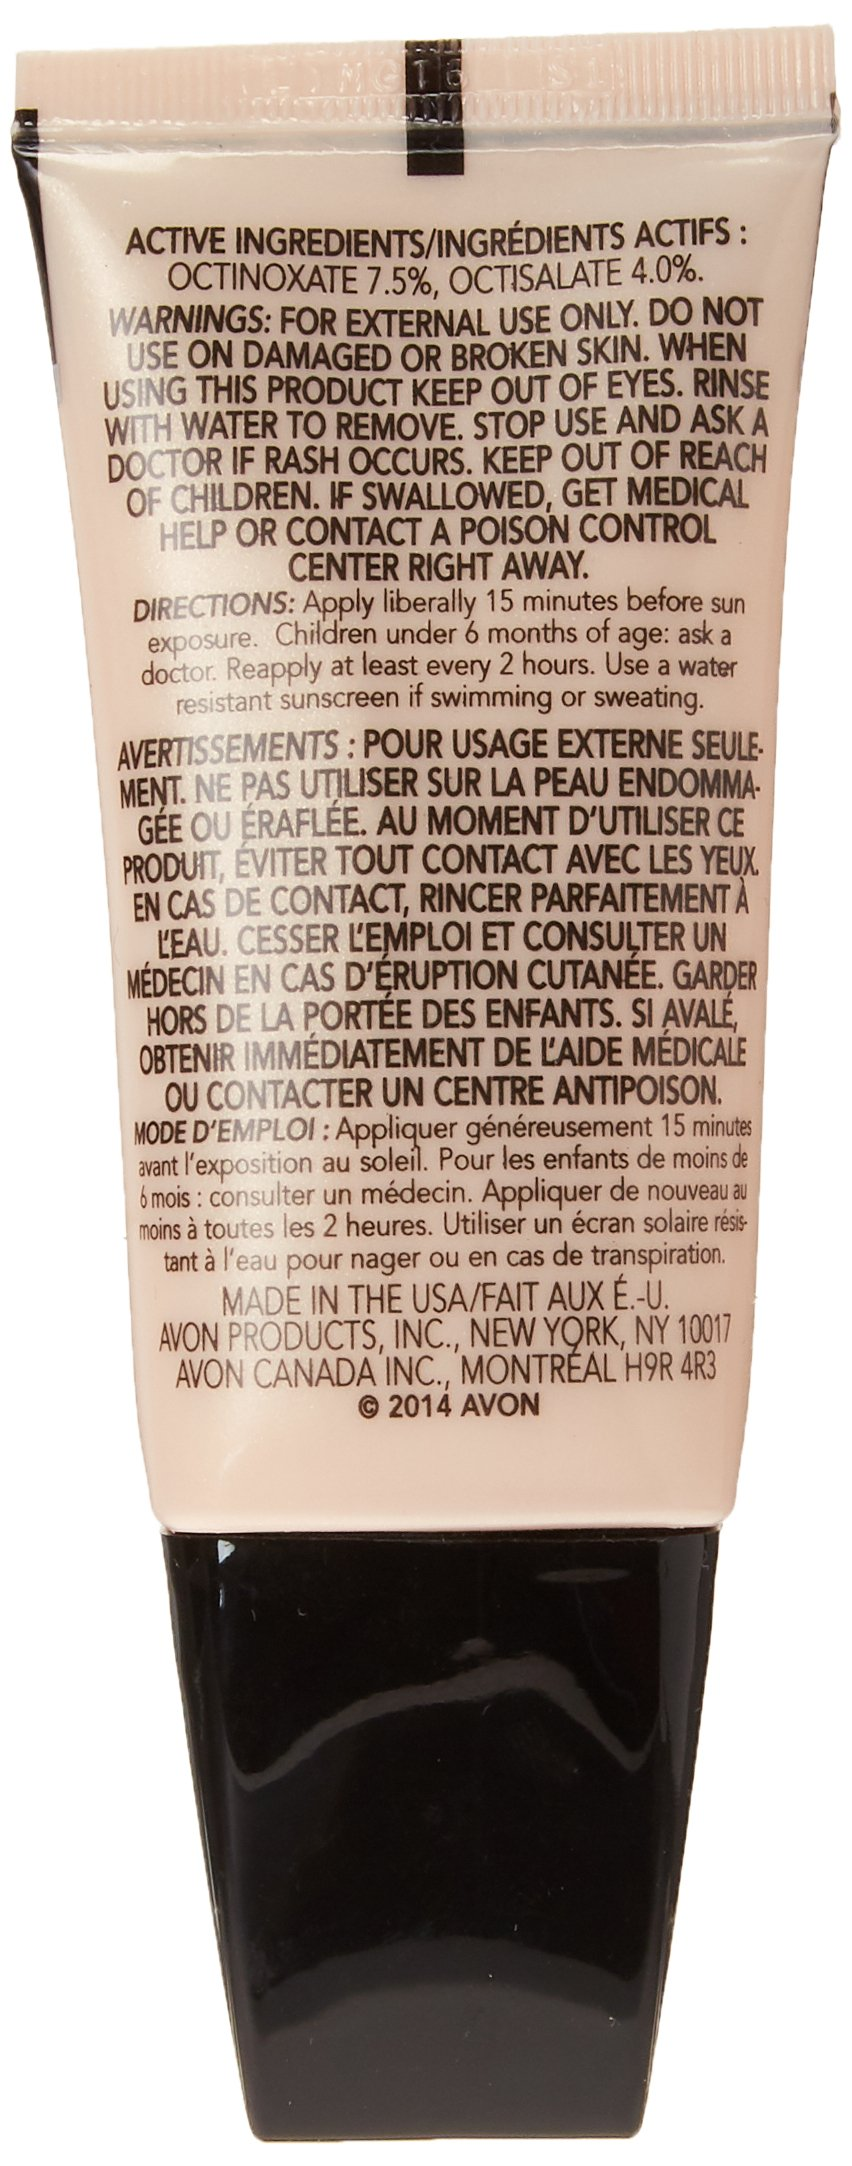 Avon Face Perfector Spf 20 Sunscreen, New Packet by AVON (Image #5)